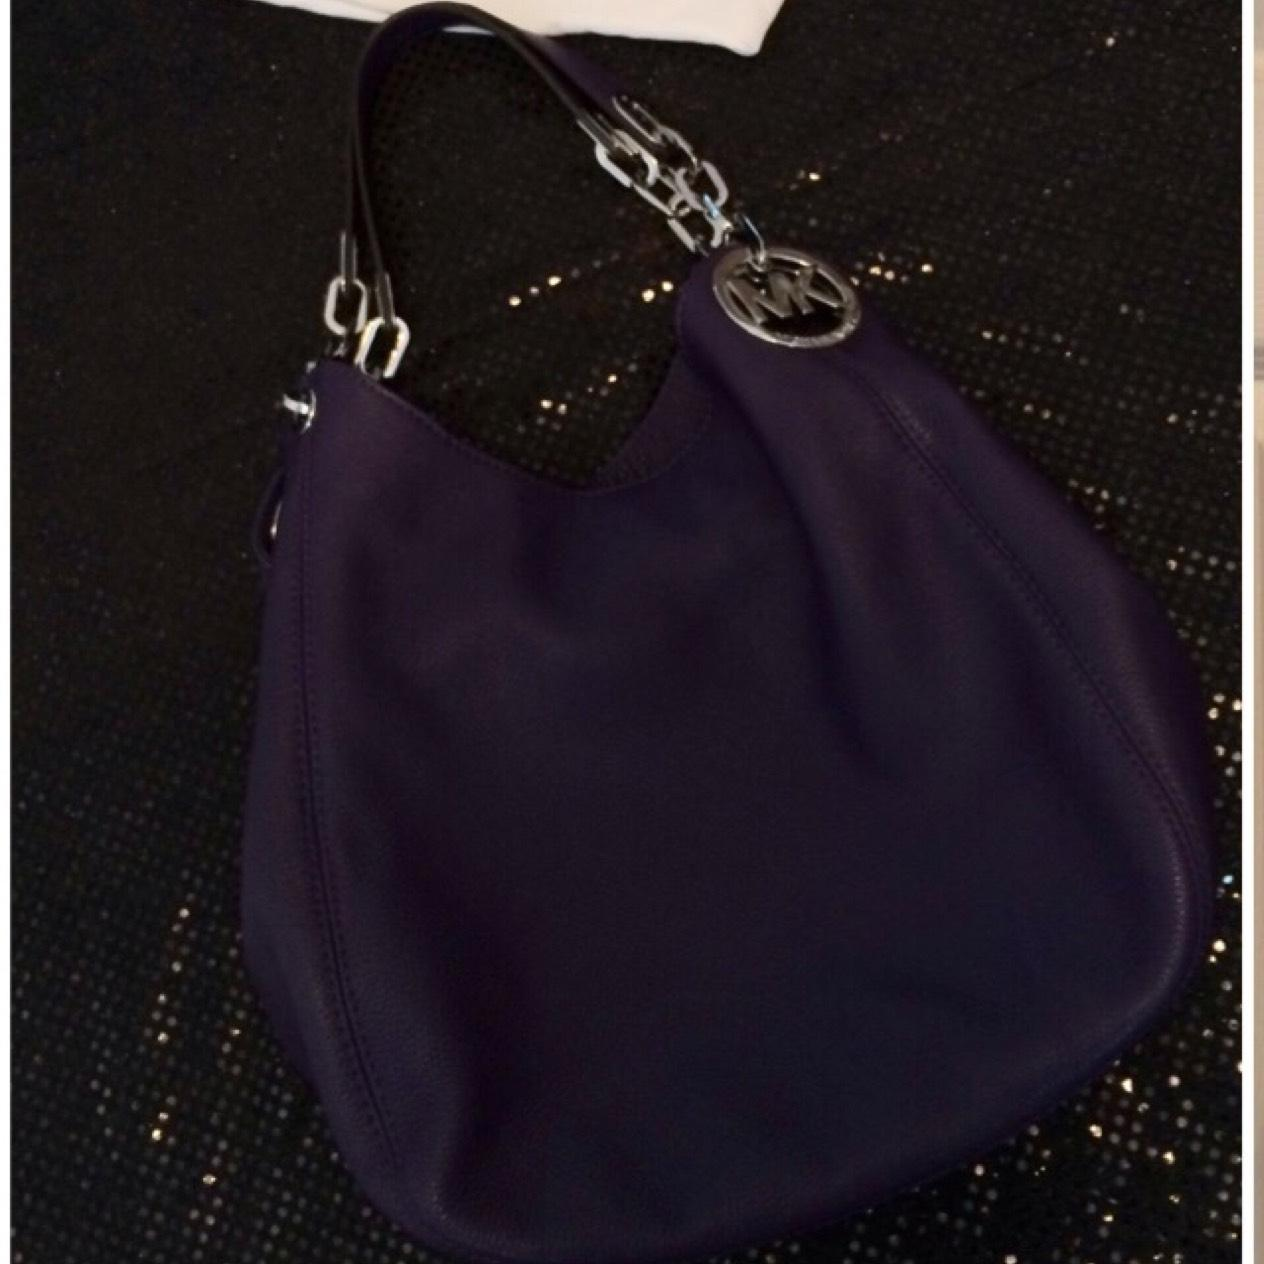 ... free shipping michael michael kors large fulton in iris purple leather  hobo bag tradesy c762c ceebc ... 3e0b211f3eb93